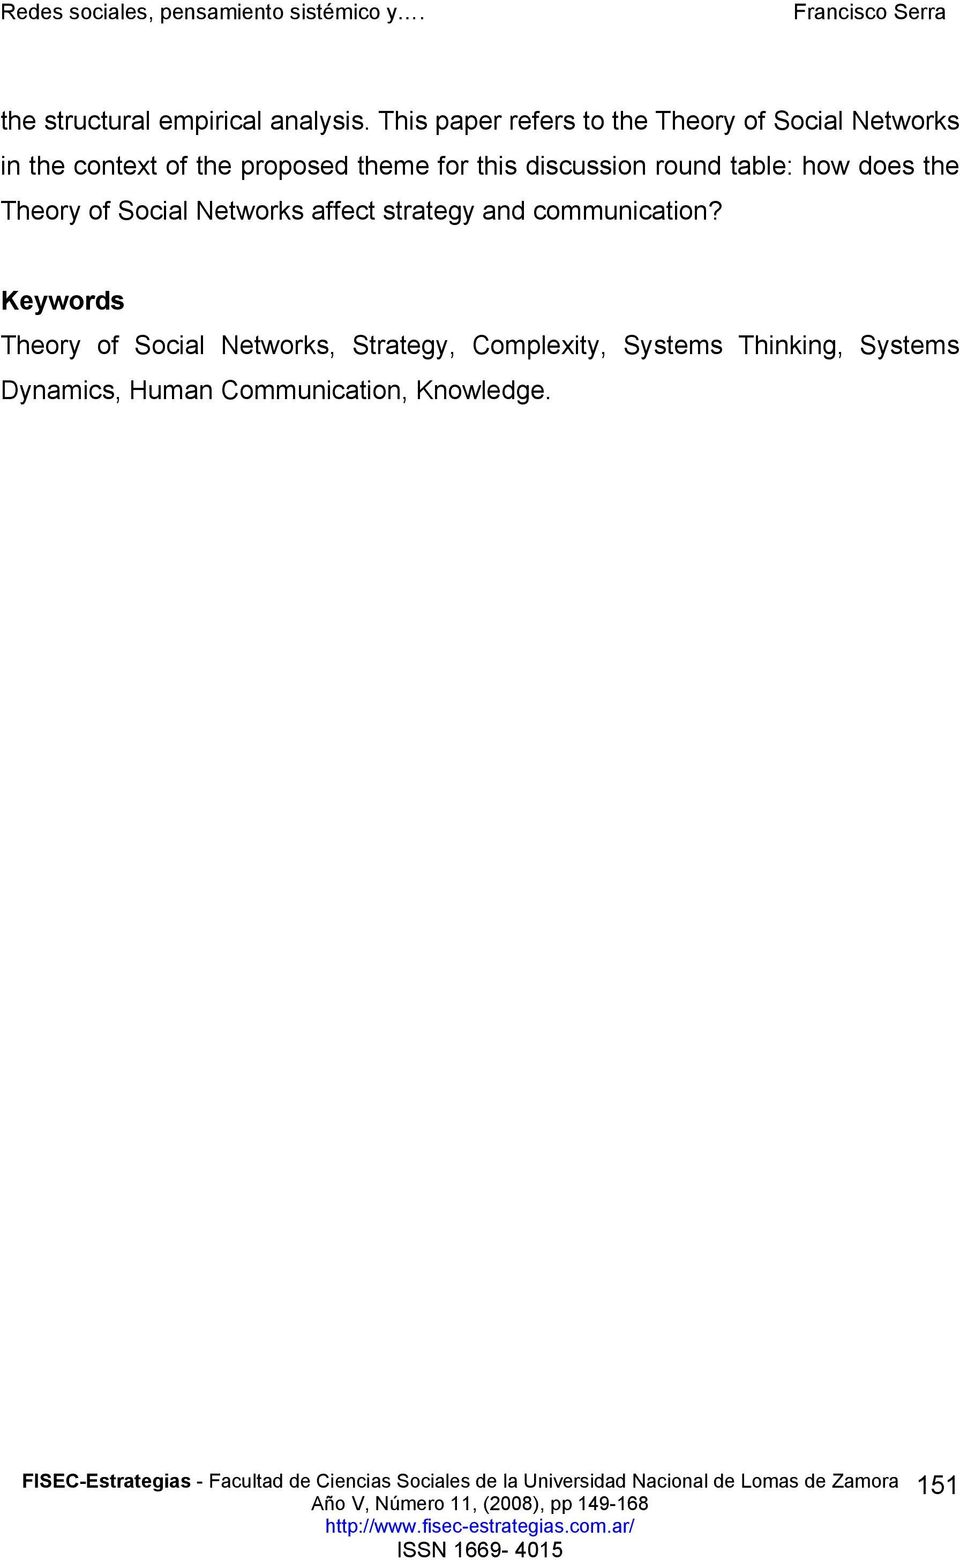 for this discussion round table: how does the Theory of Social Networks affect strategy